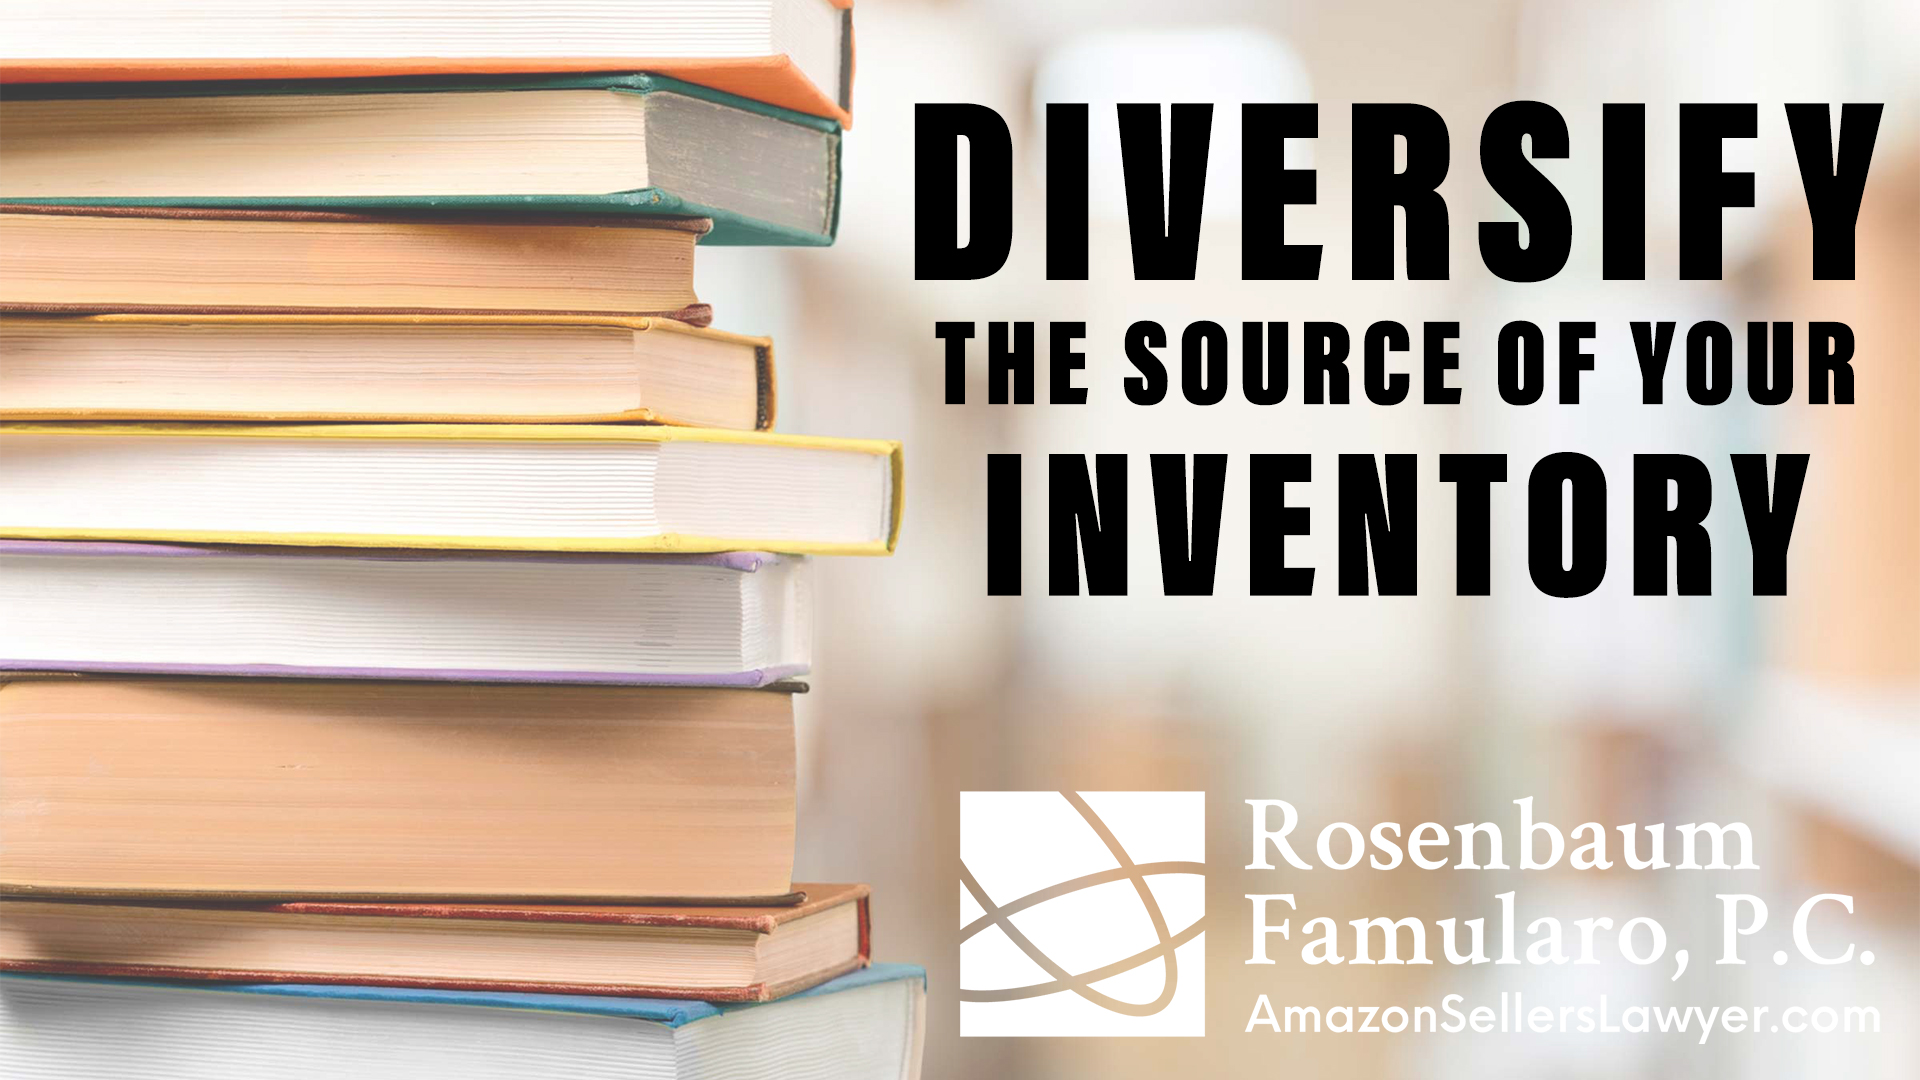 Book Sellers on Amazon Diversify the Source of Your Inventory